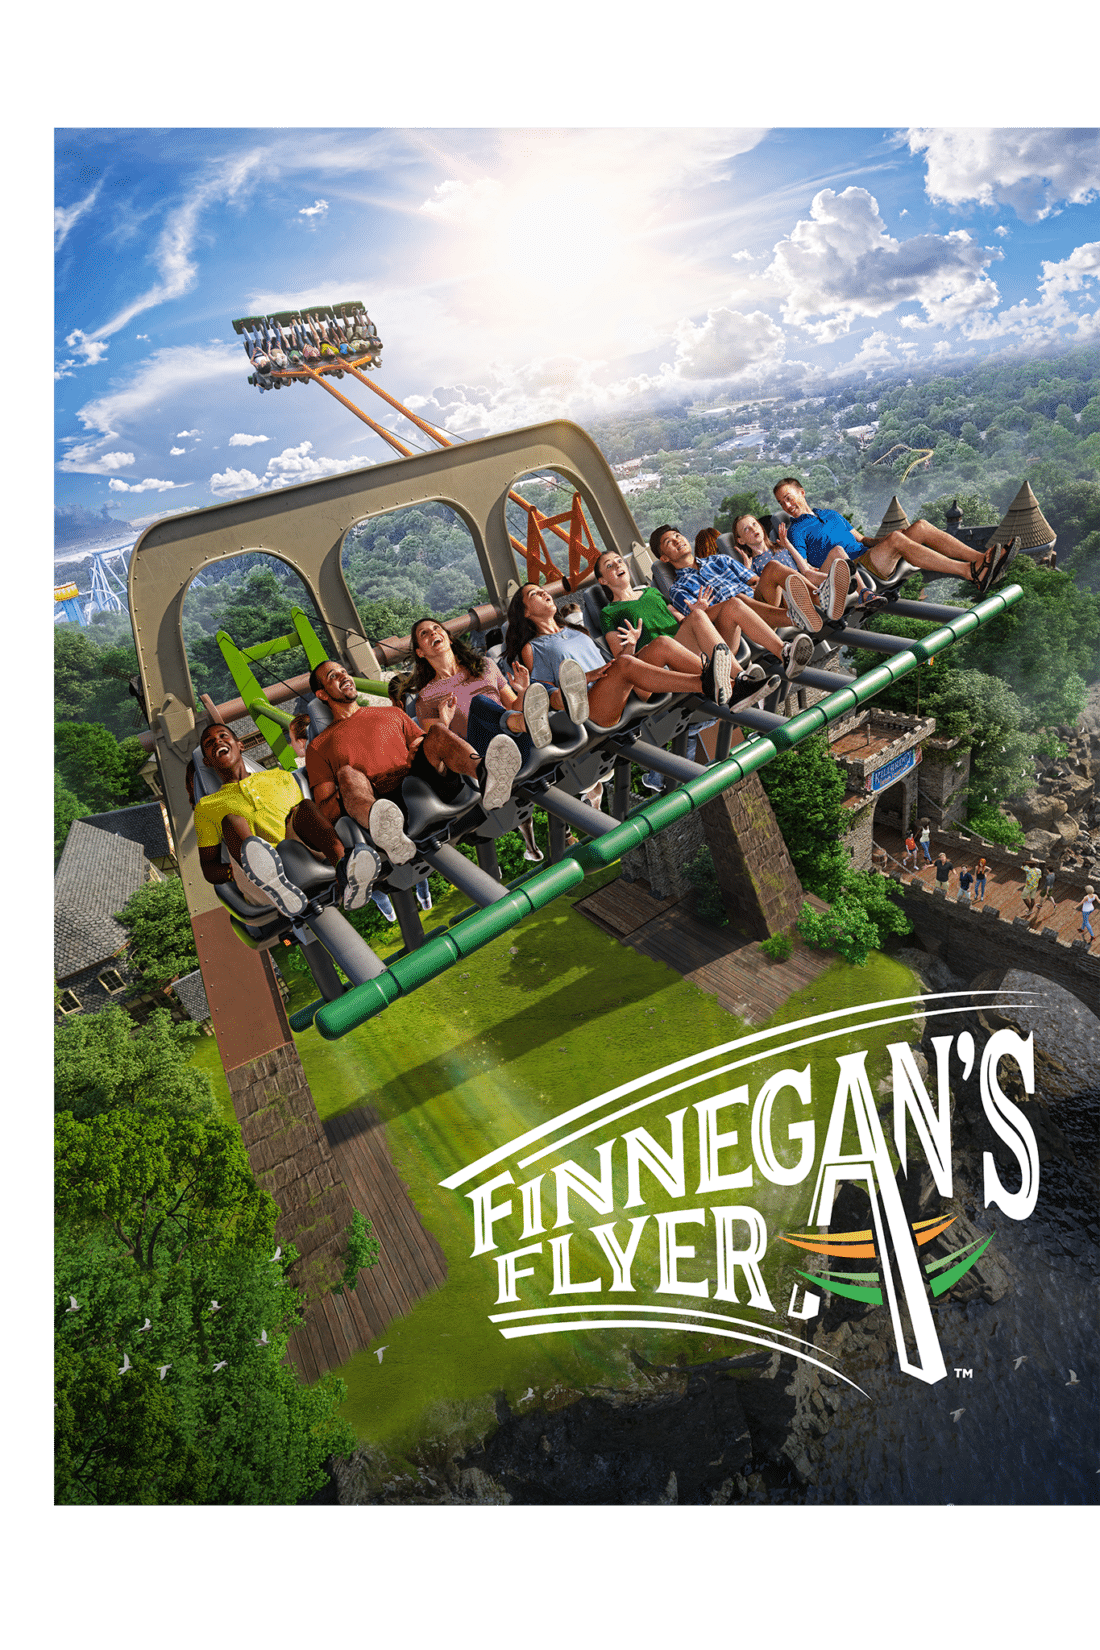 The Newest ride Finnegan Flyers at Busch Gardens Williamsburg is set to debut May 2019.